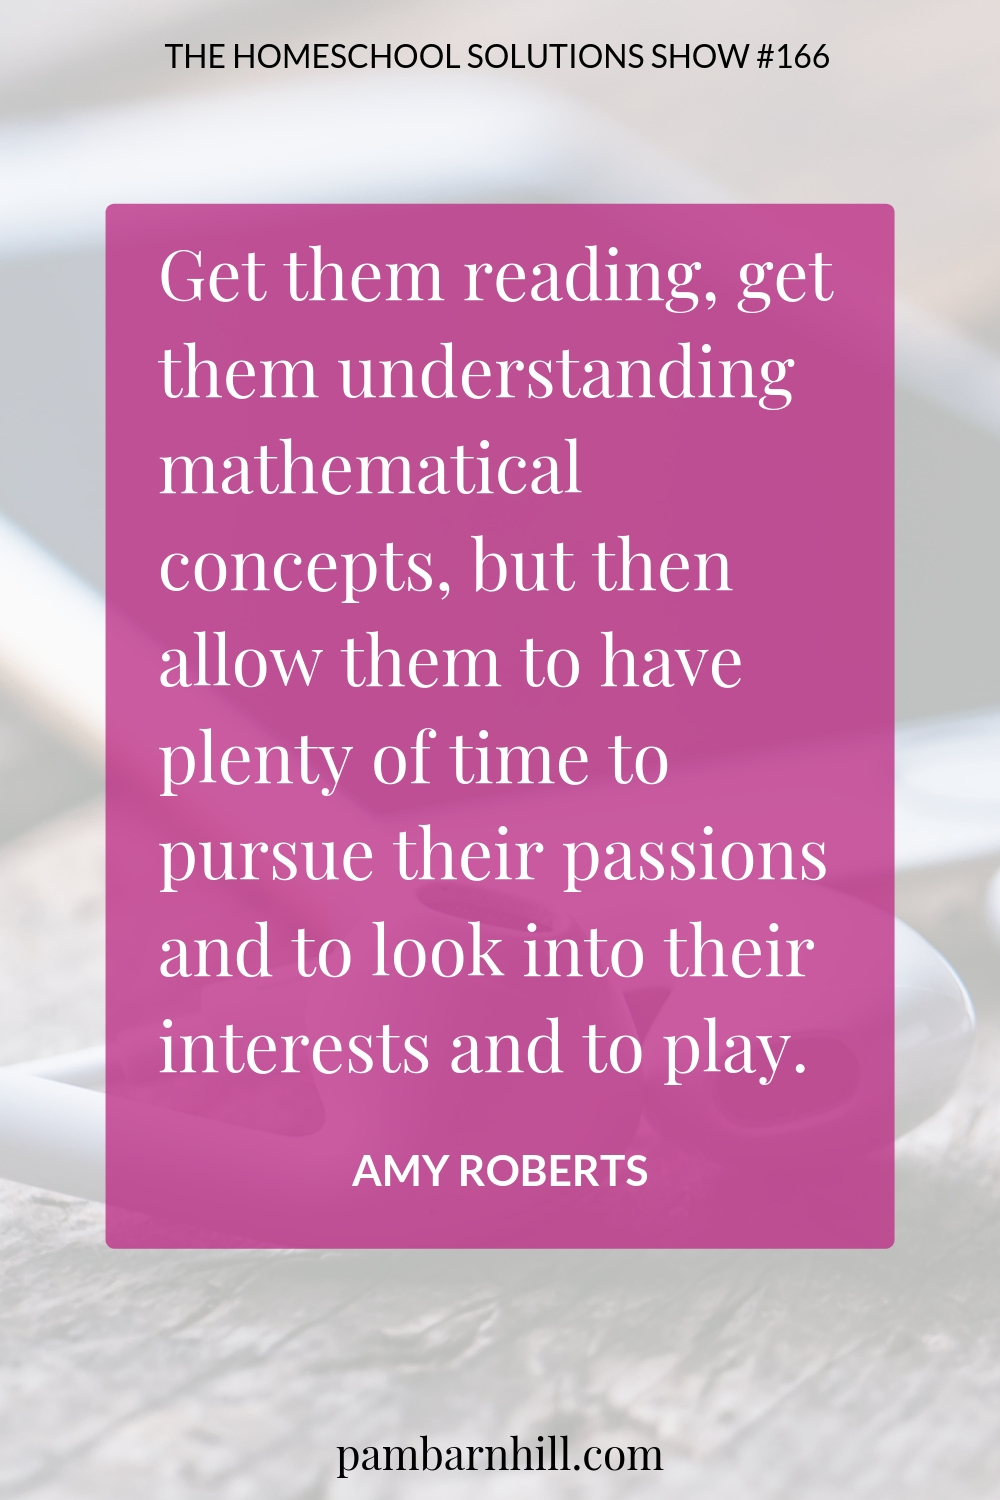 HS 166: Homeschool Planning for Pregnancy and a Newborn with Amy Roberts